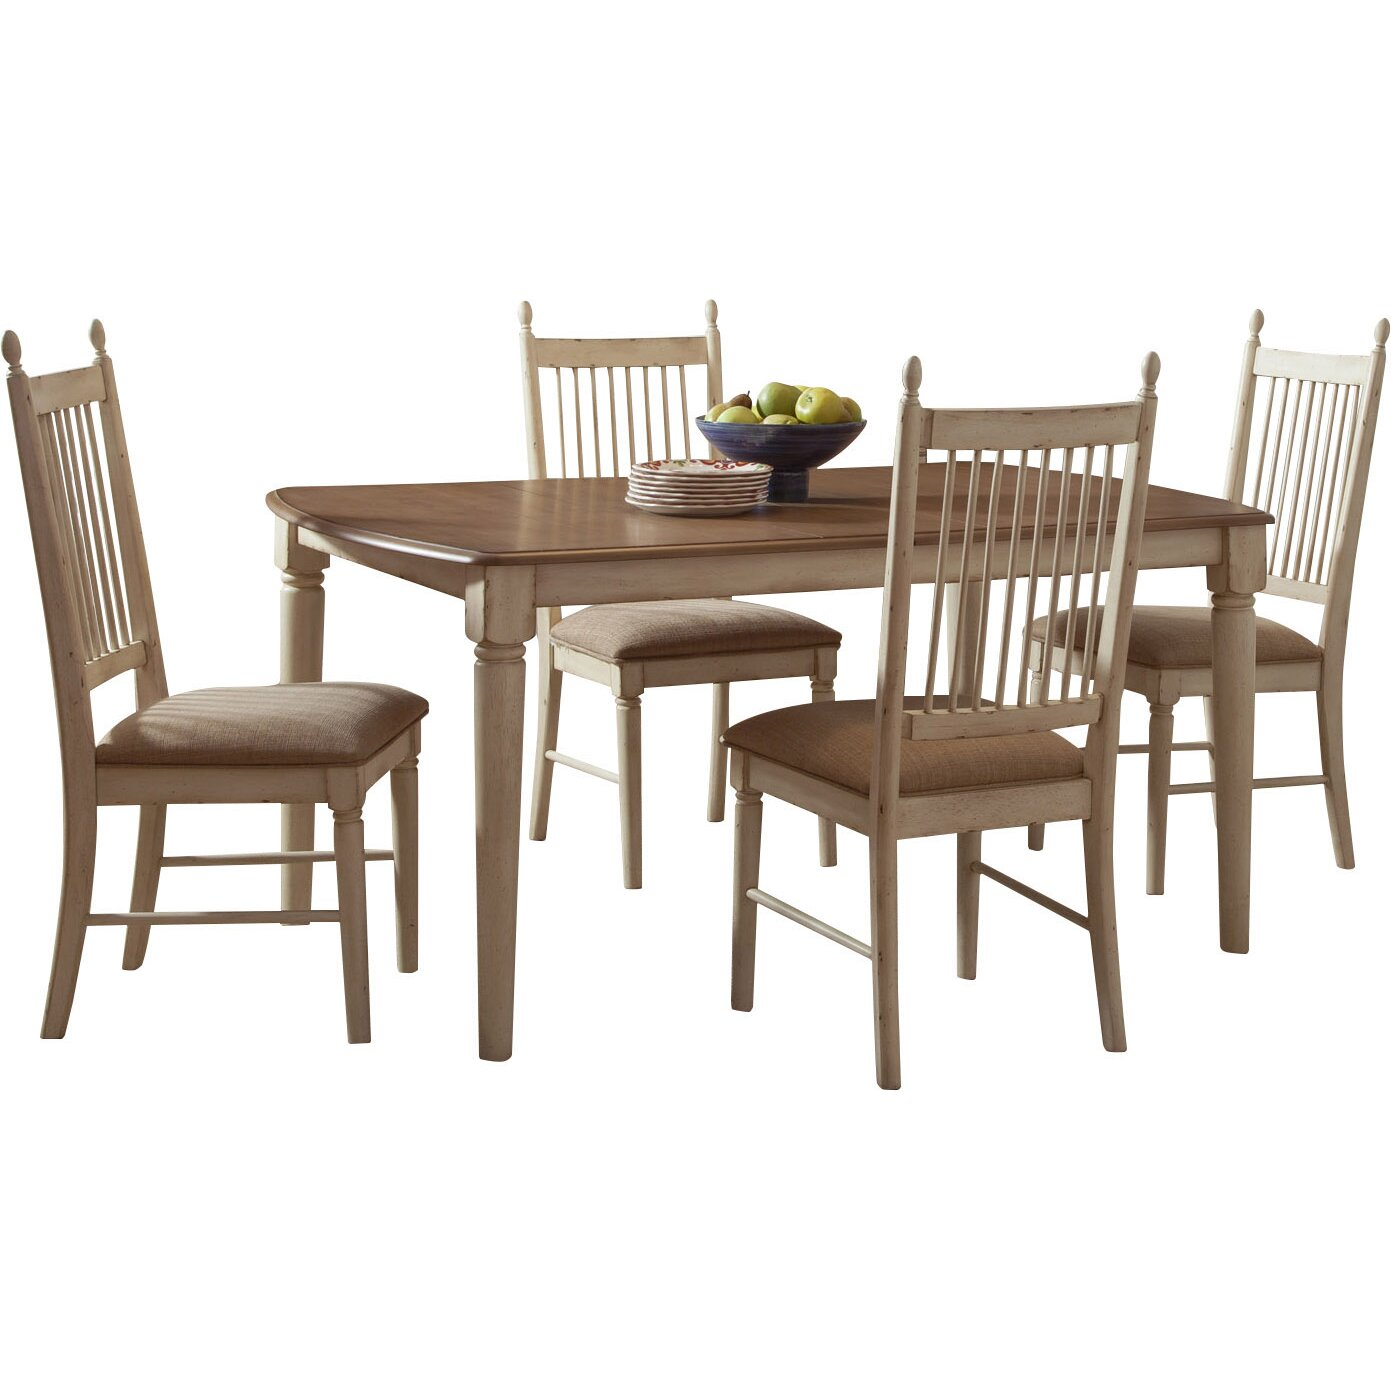 Liberty furniture cottage cove extendable dining table for Cottage furniture